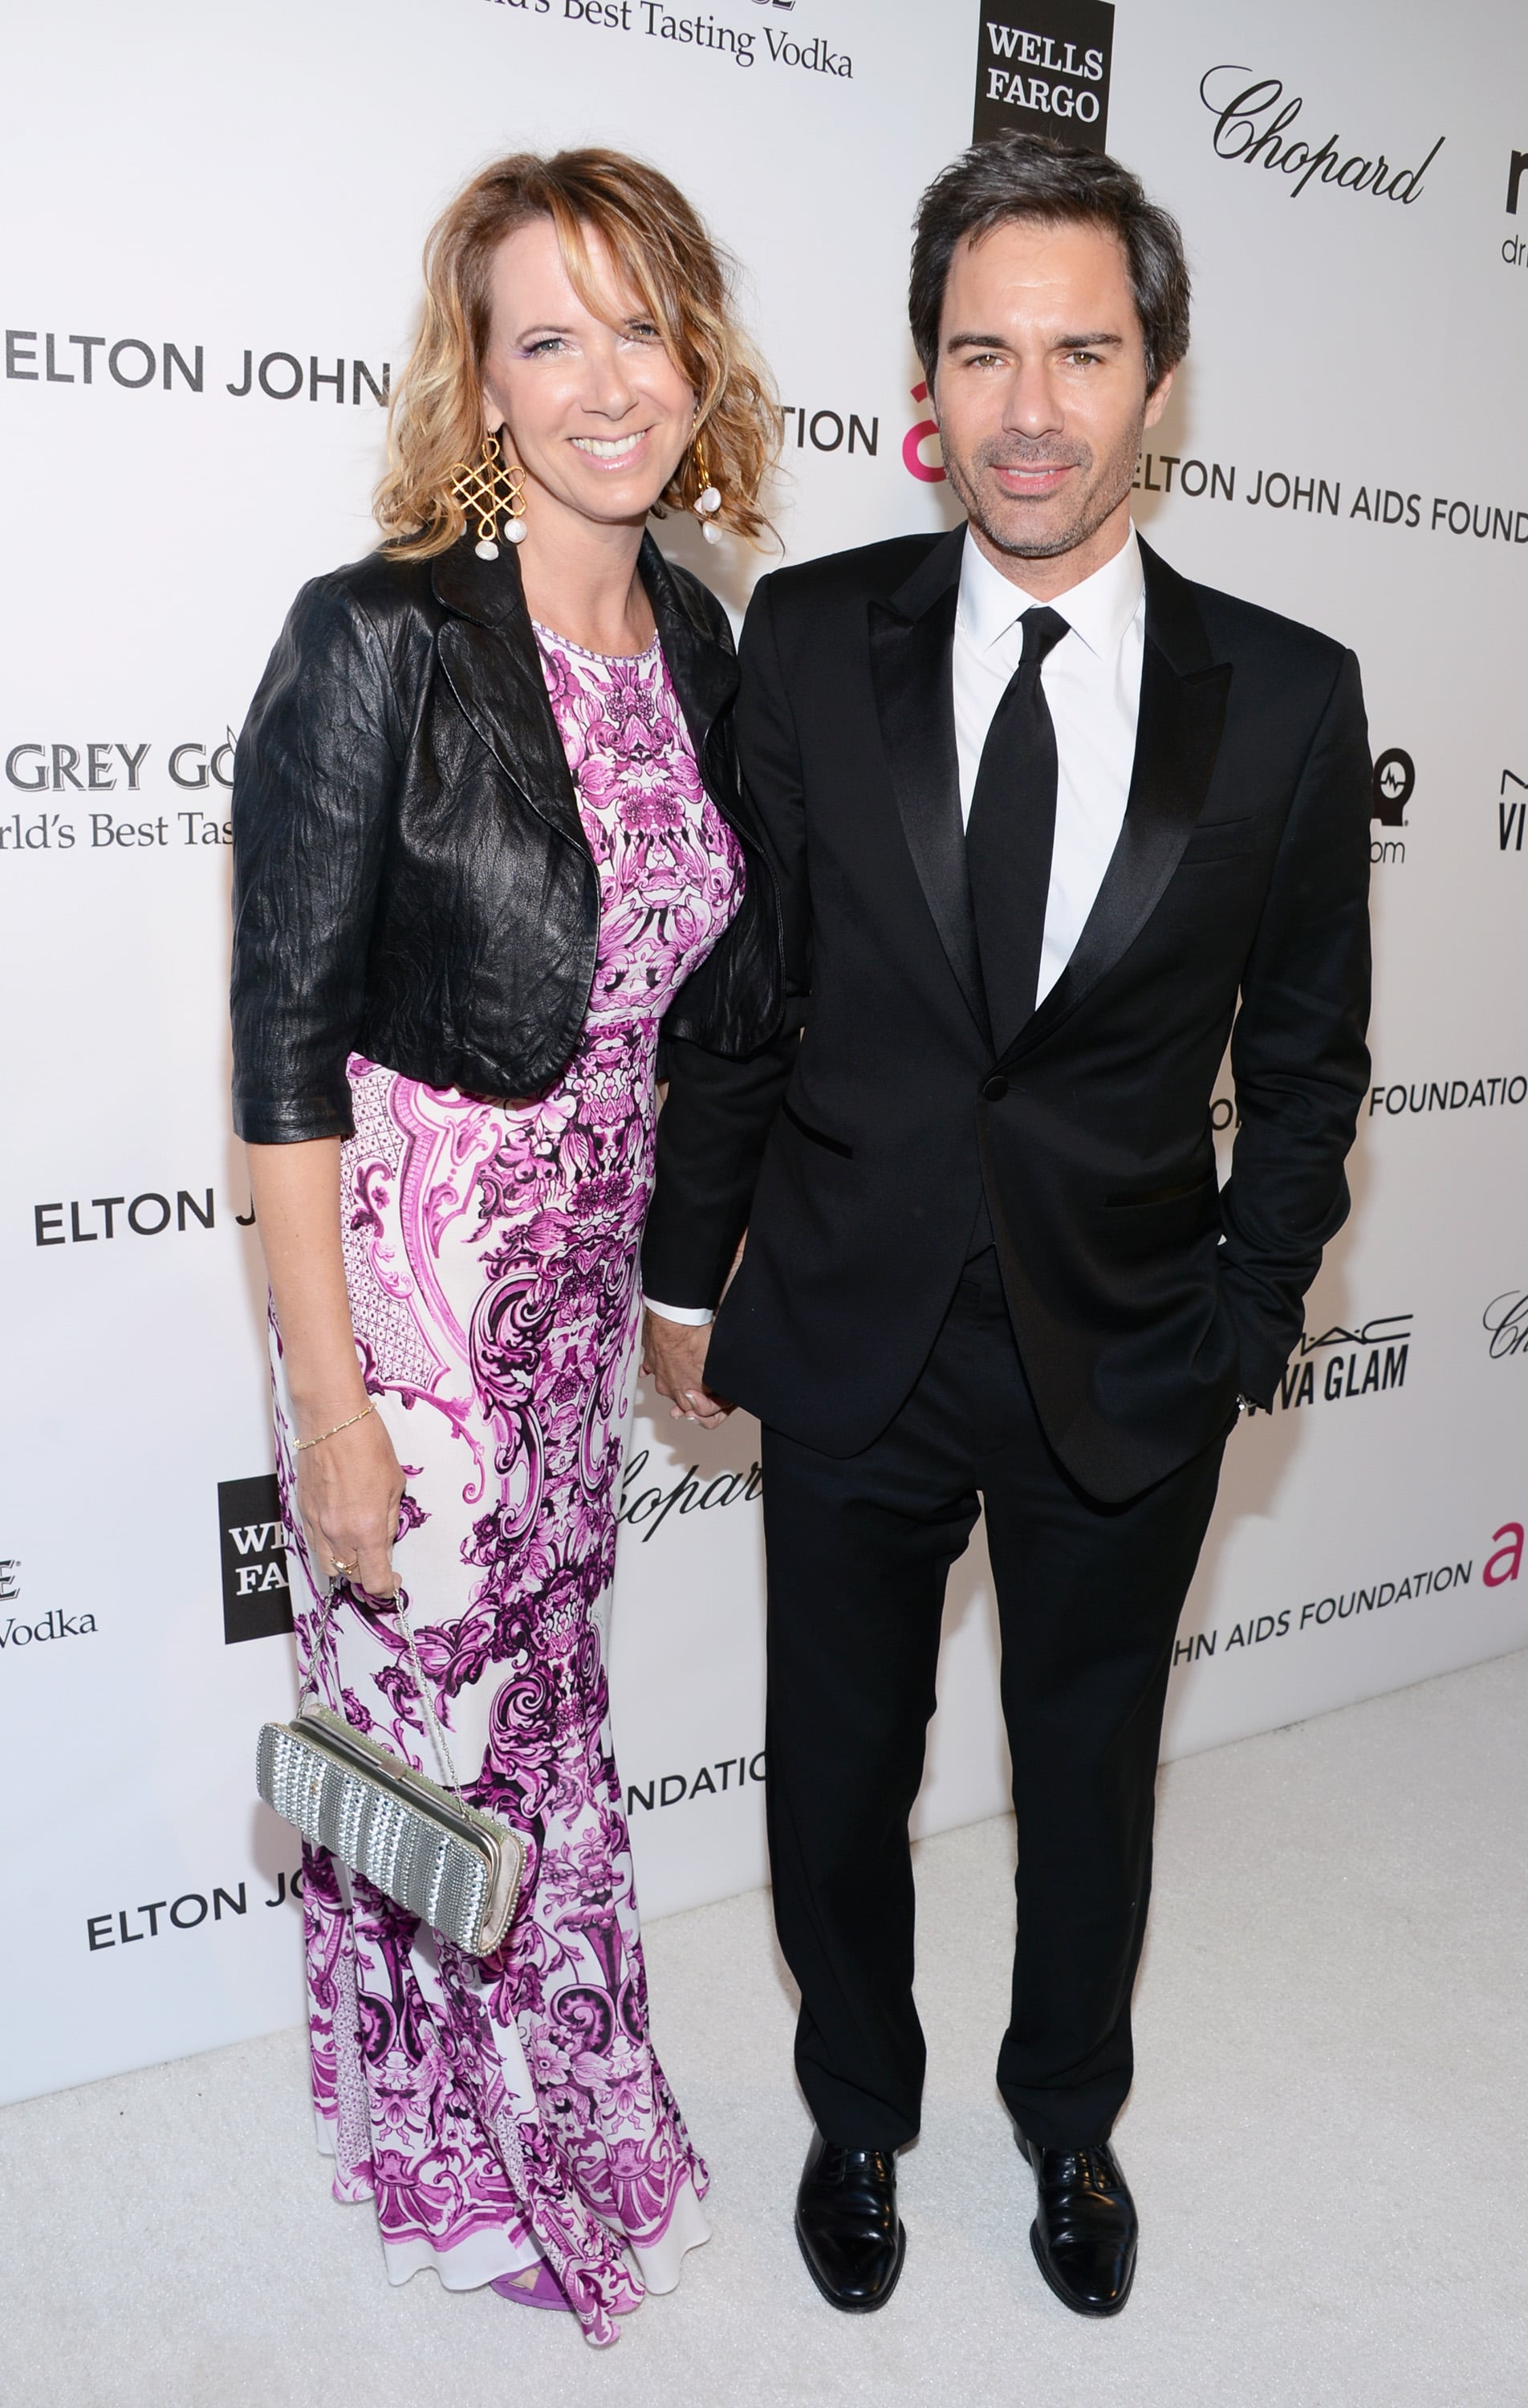 Janet Holden And Eric Mccormack Celebrity Pictures At Elton John Oscar Viewing Party 2013 Popsugar Celebrity Australia Photo 65 Learn about janet holden (director): janet holden and eric mccormack